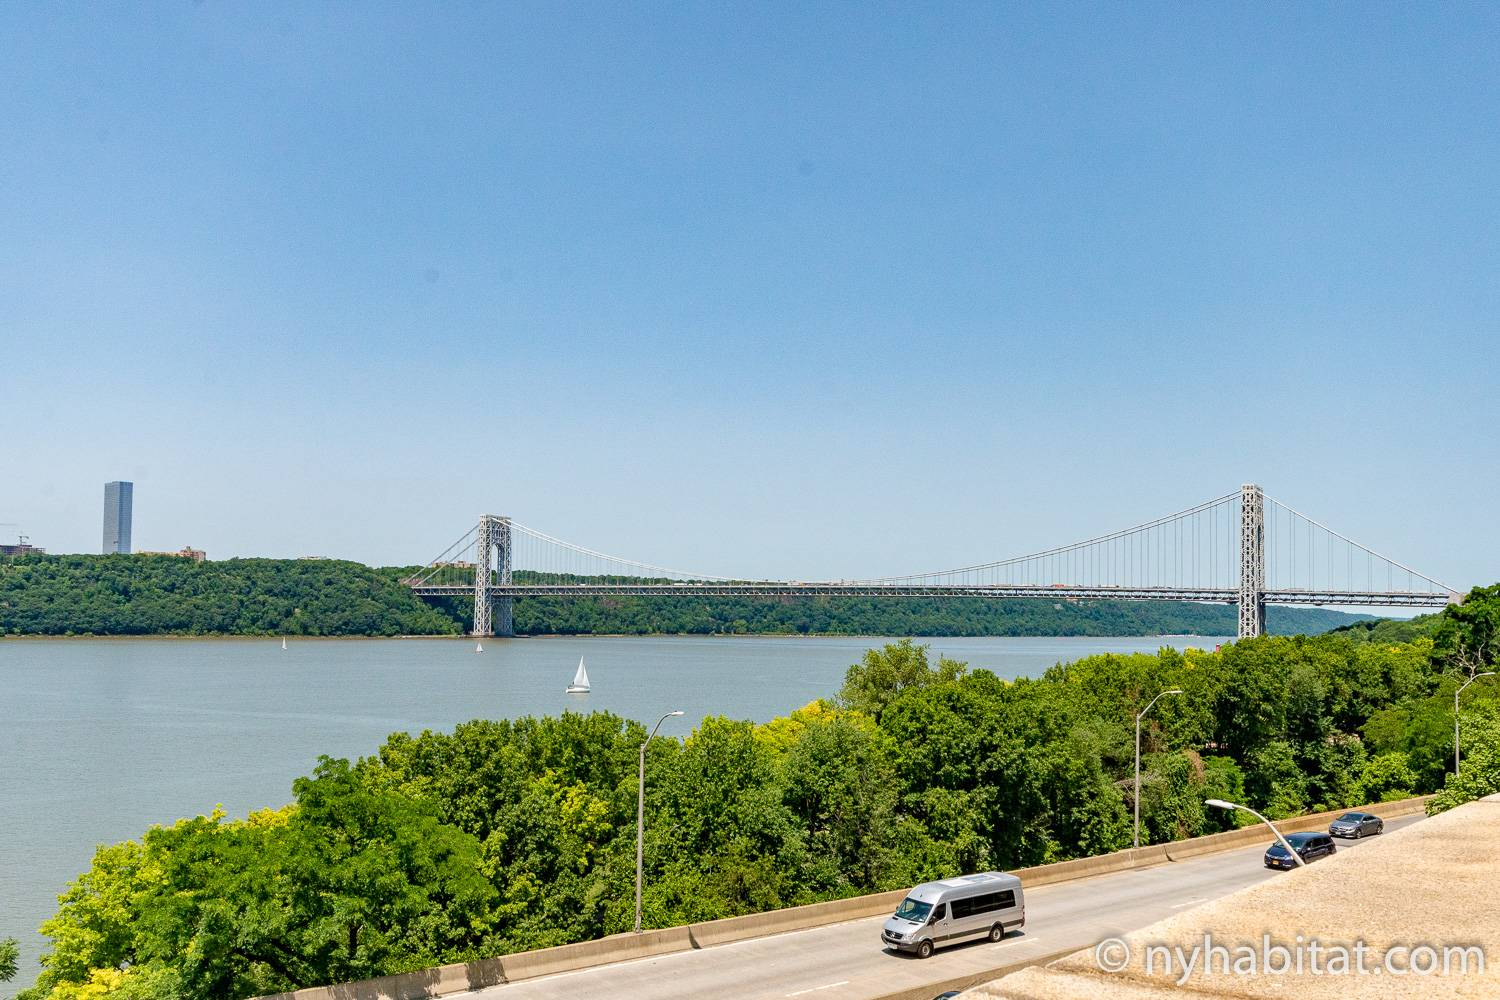 Image of view from NY-6328 of the Hudson River.